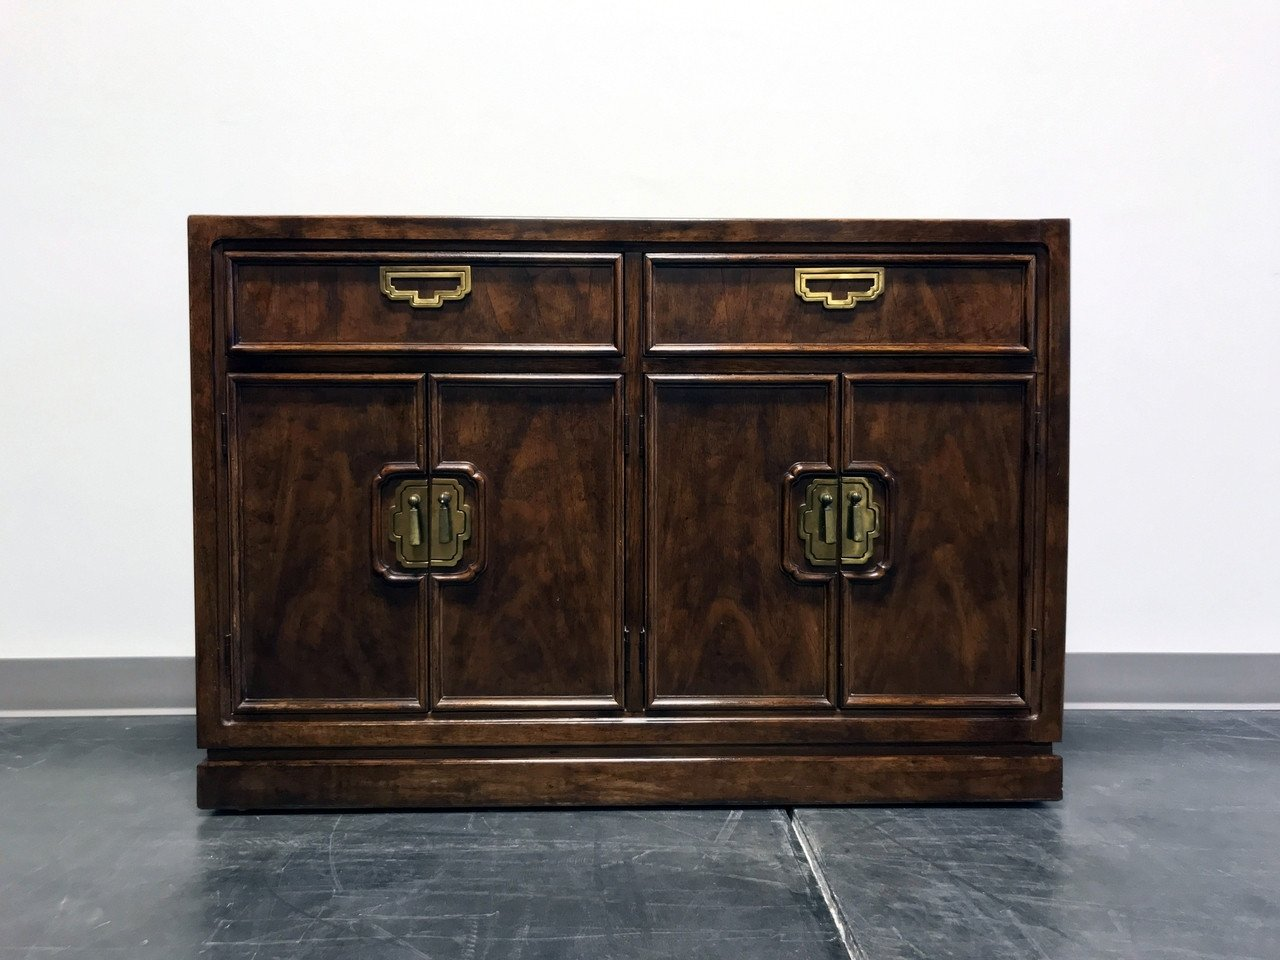 Vintage Thomasville Bedroom Furniture Awesome sold Out Thomasville Mystique asian Chinoiserie Buffet Sideboard Credenza